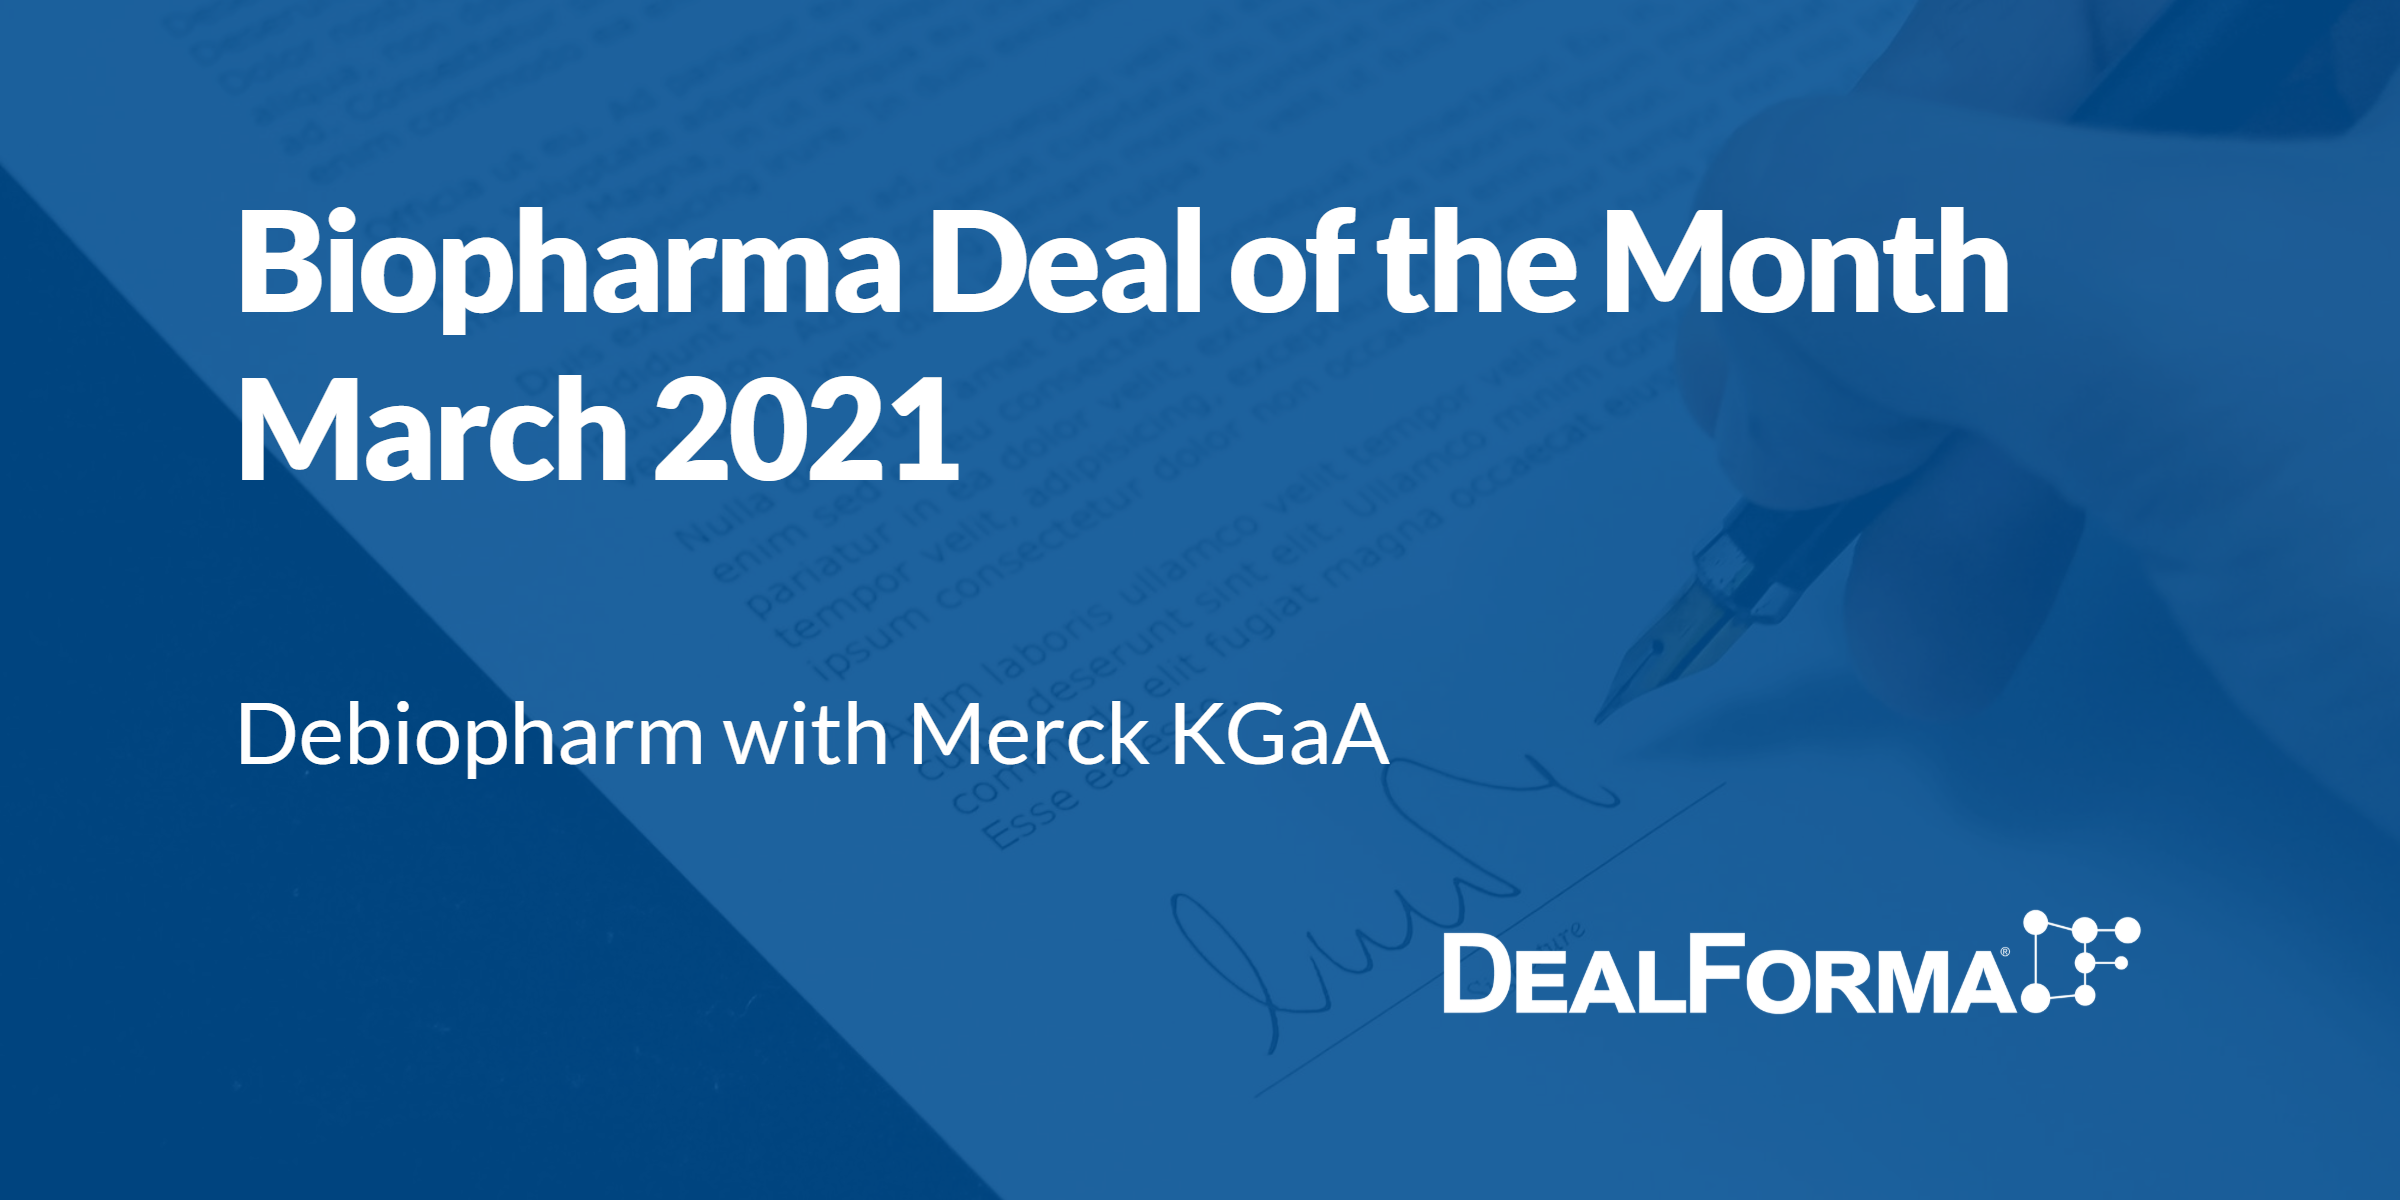 Top biopharma deal upfront Mar 2021